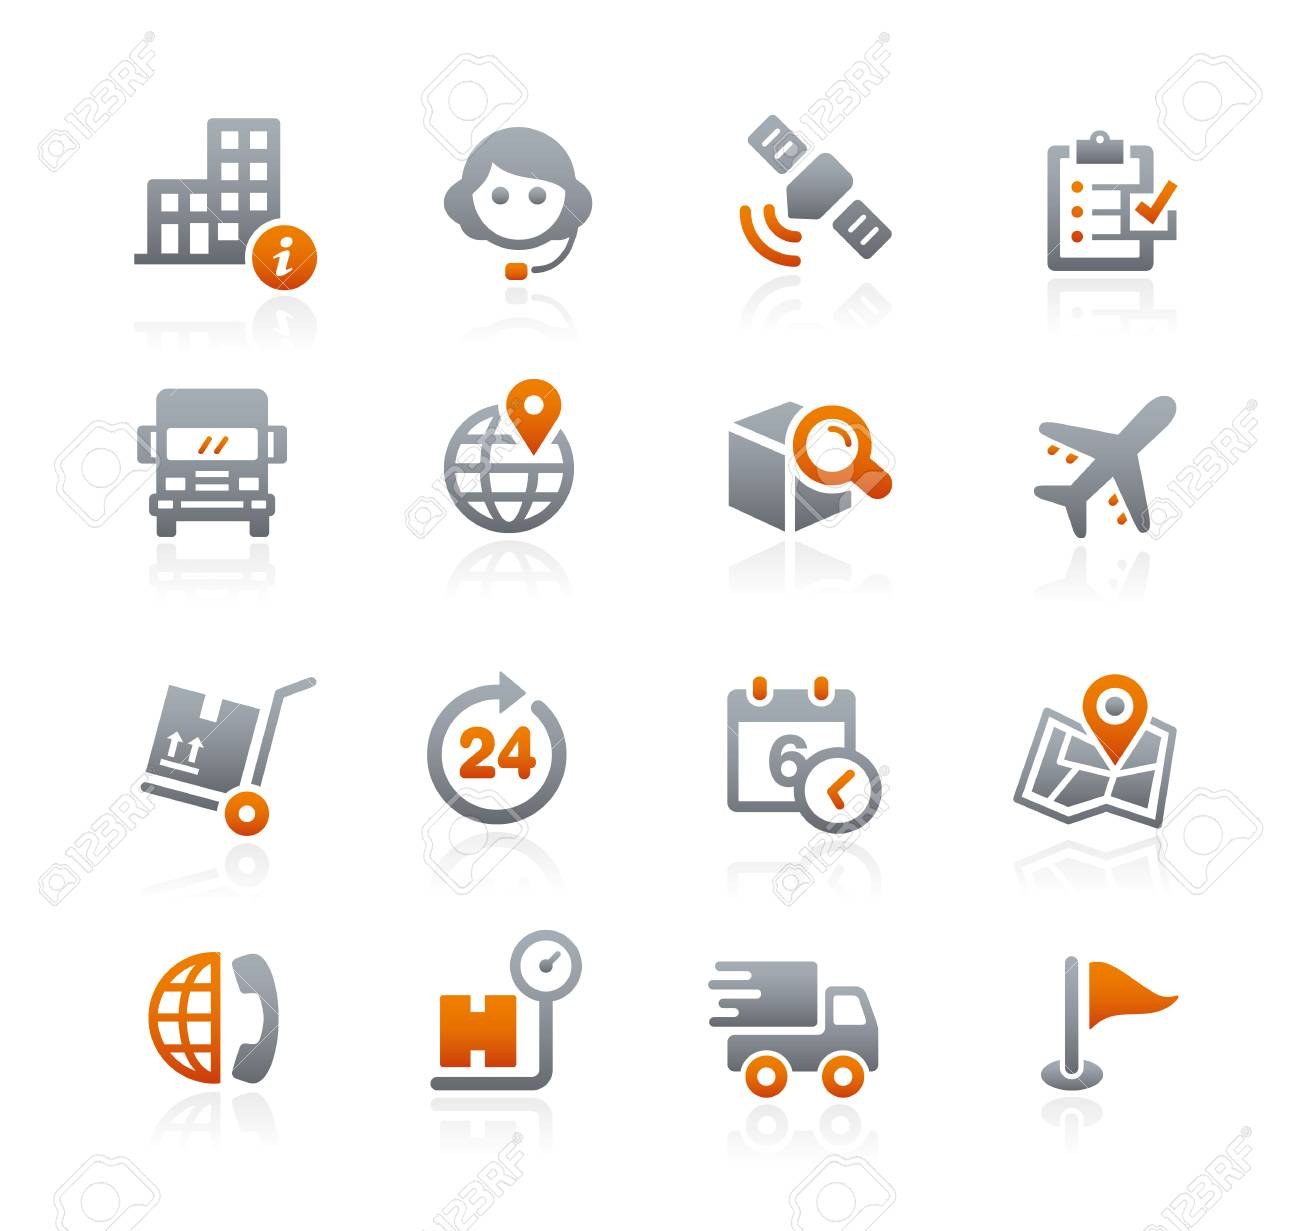 Shipping and Tracking Icons - Graphite Series - 50481735